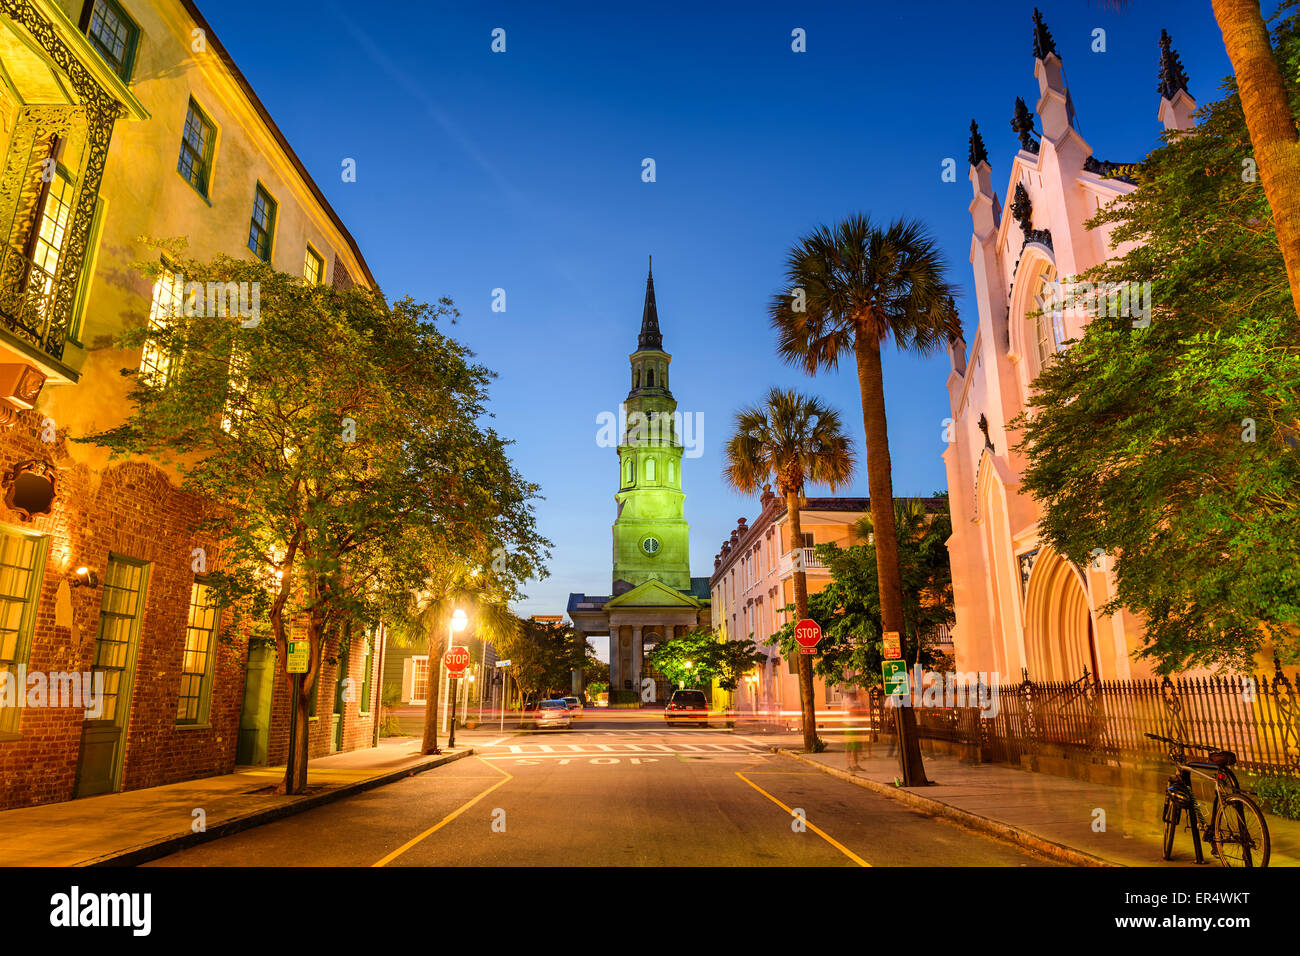 Charleston, South Carolina, USA on Church Street. - Stock Image